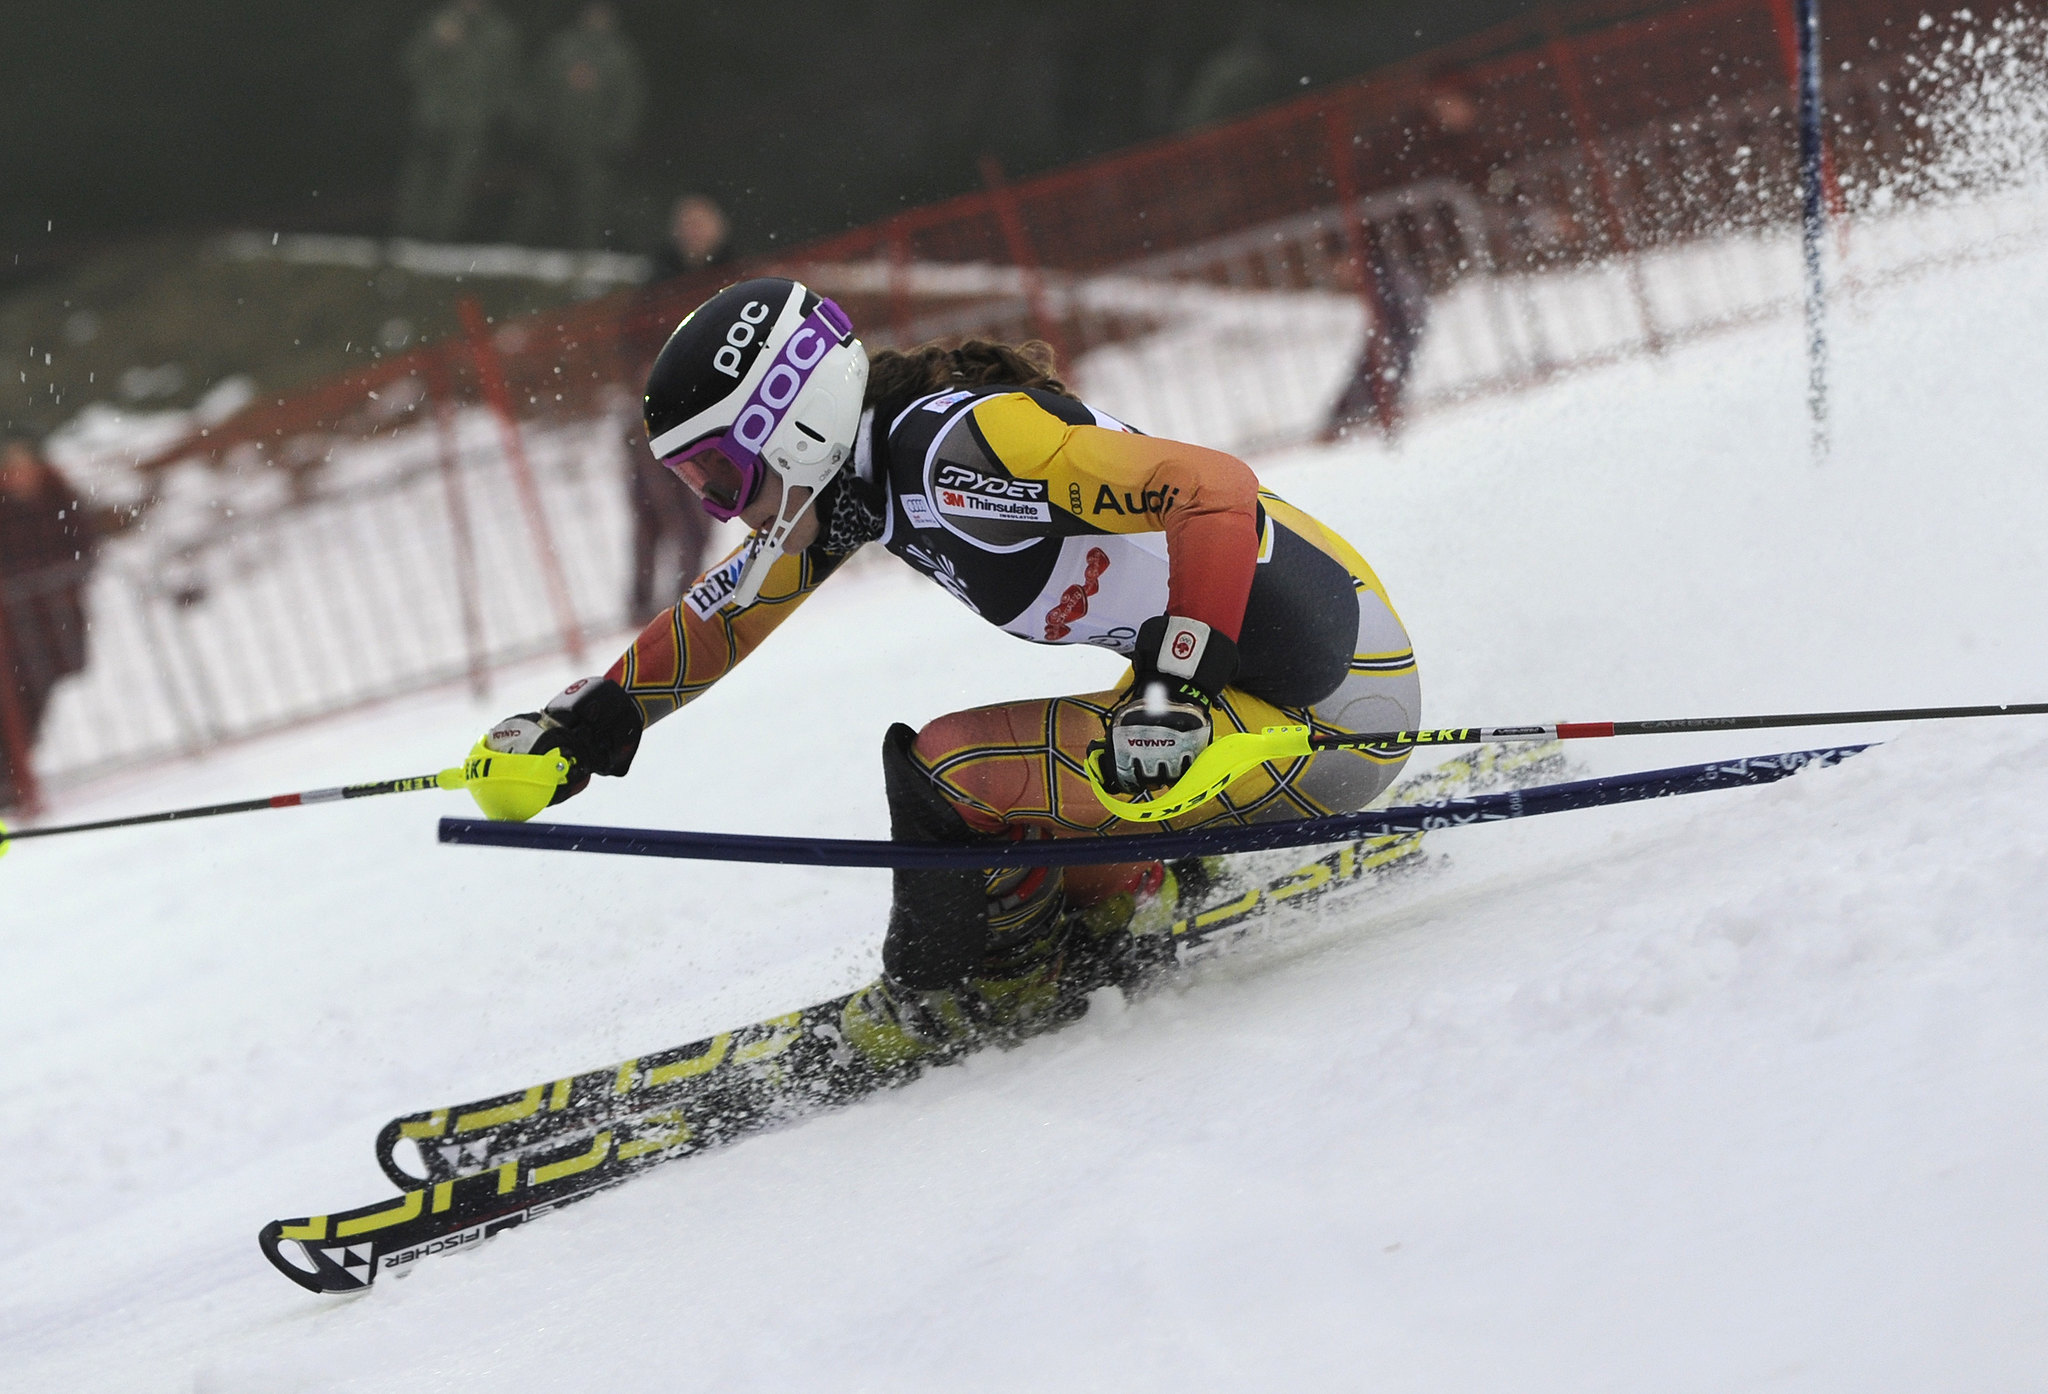 Elli Terwiel at the World Cup slalom in Zagreb.